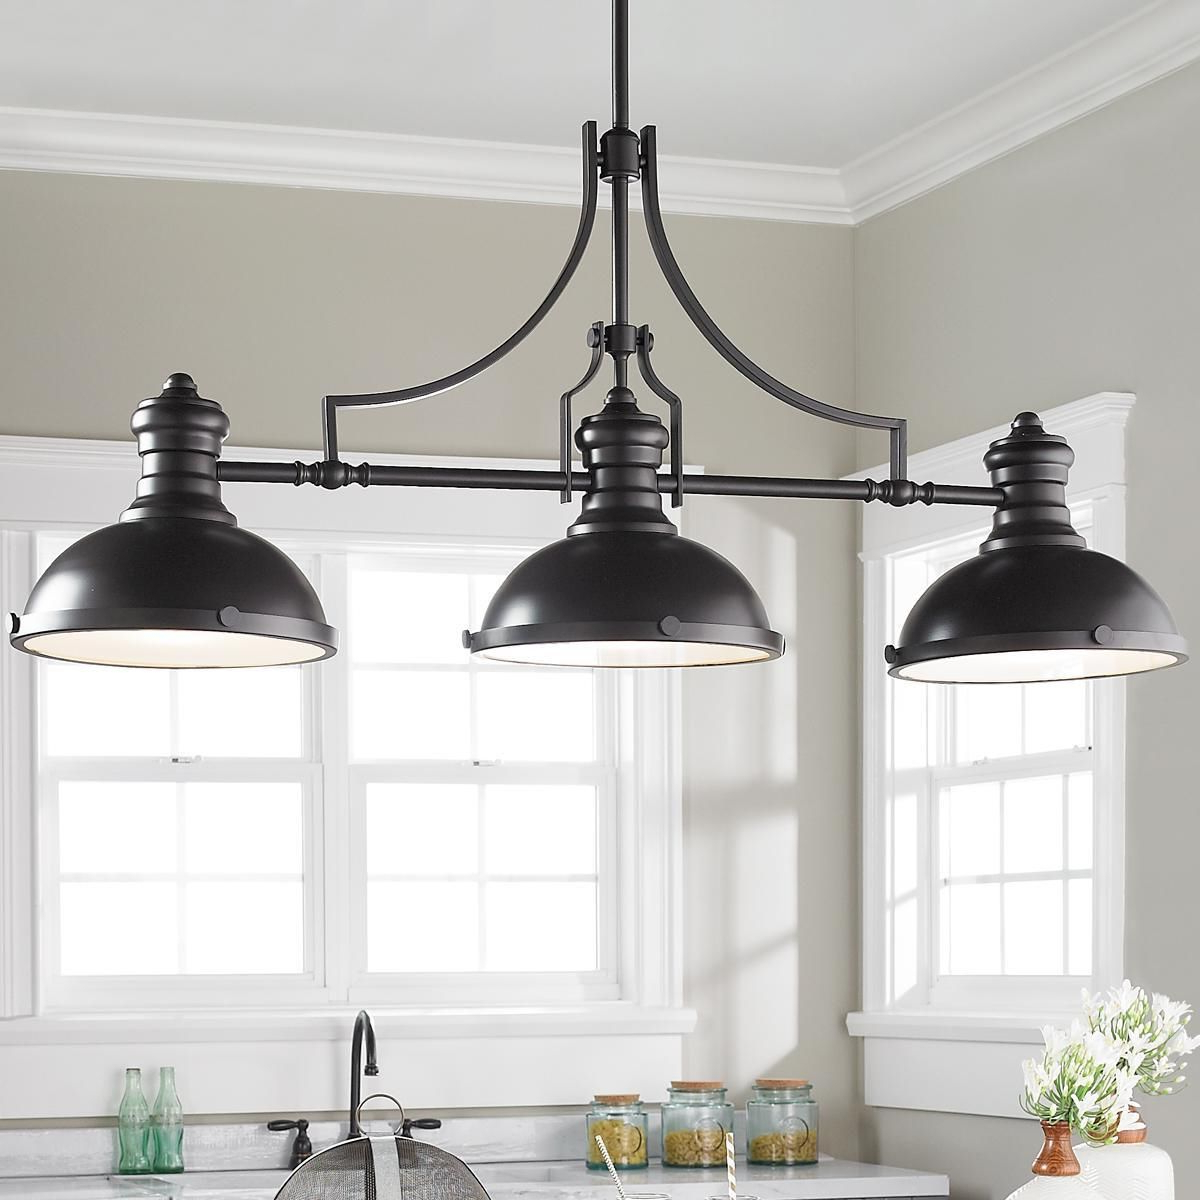 Ariel 2 Light Kitchen Island Dome Pendants Intended For Most Current Craftsman Period Island Chandelier – 3 Light (View 6 of 20)